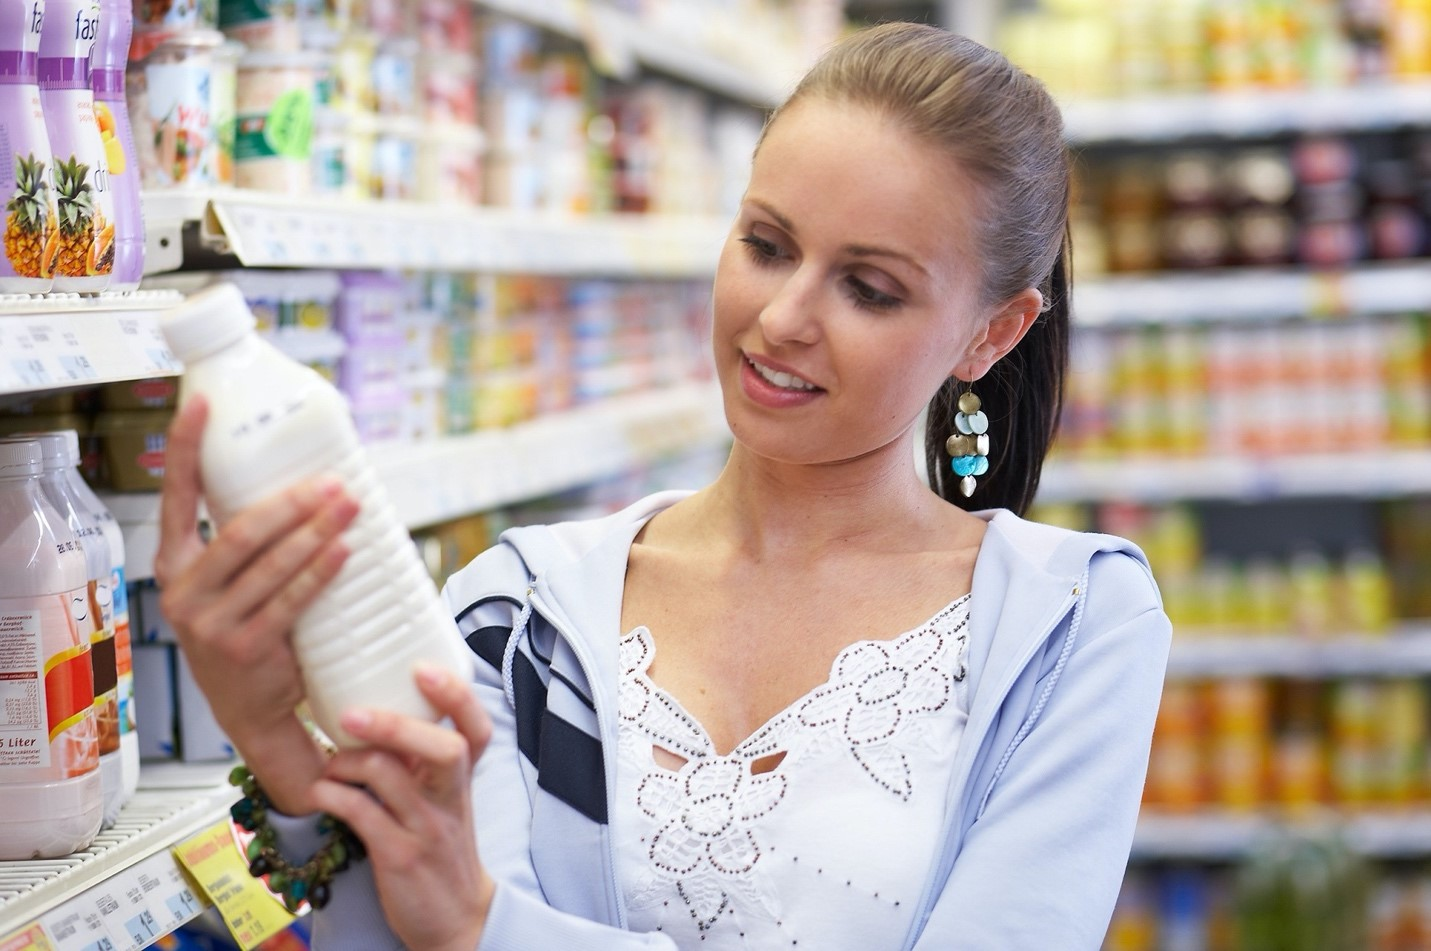 Woman in supermarket looking at the ingredients on a bottle